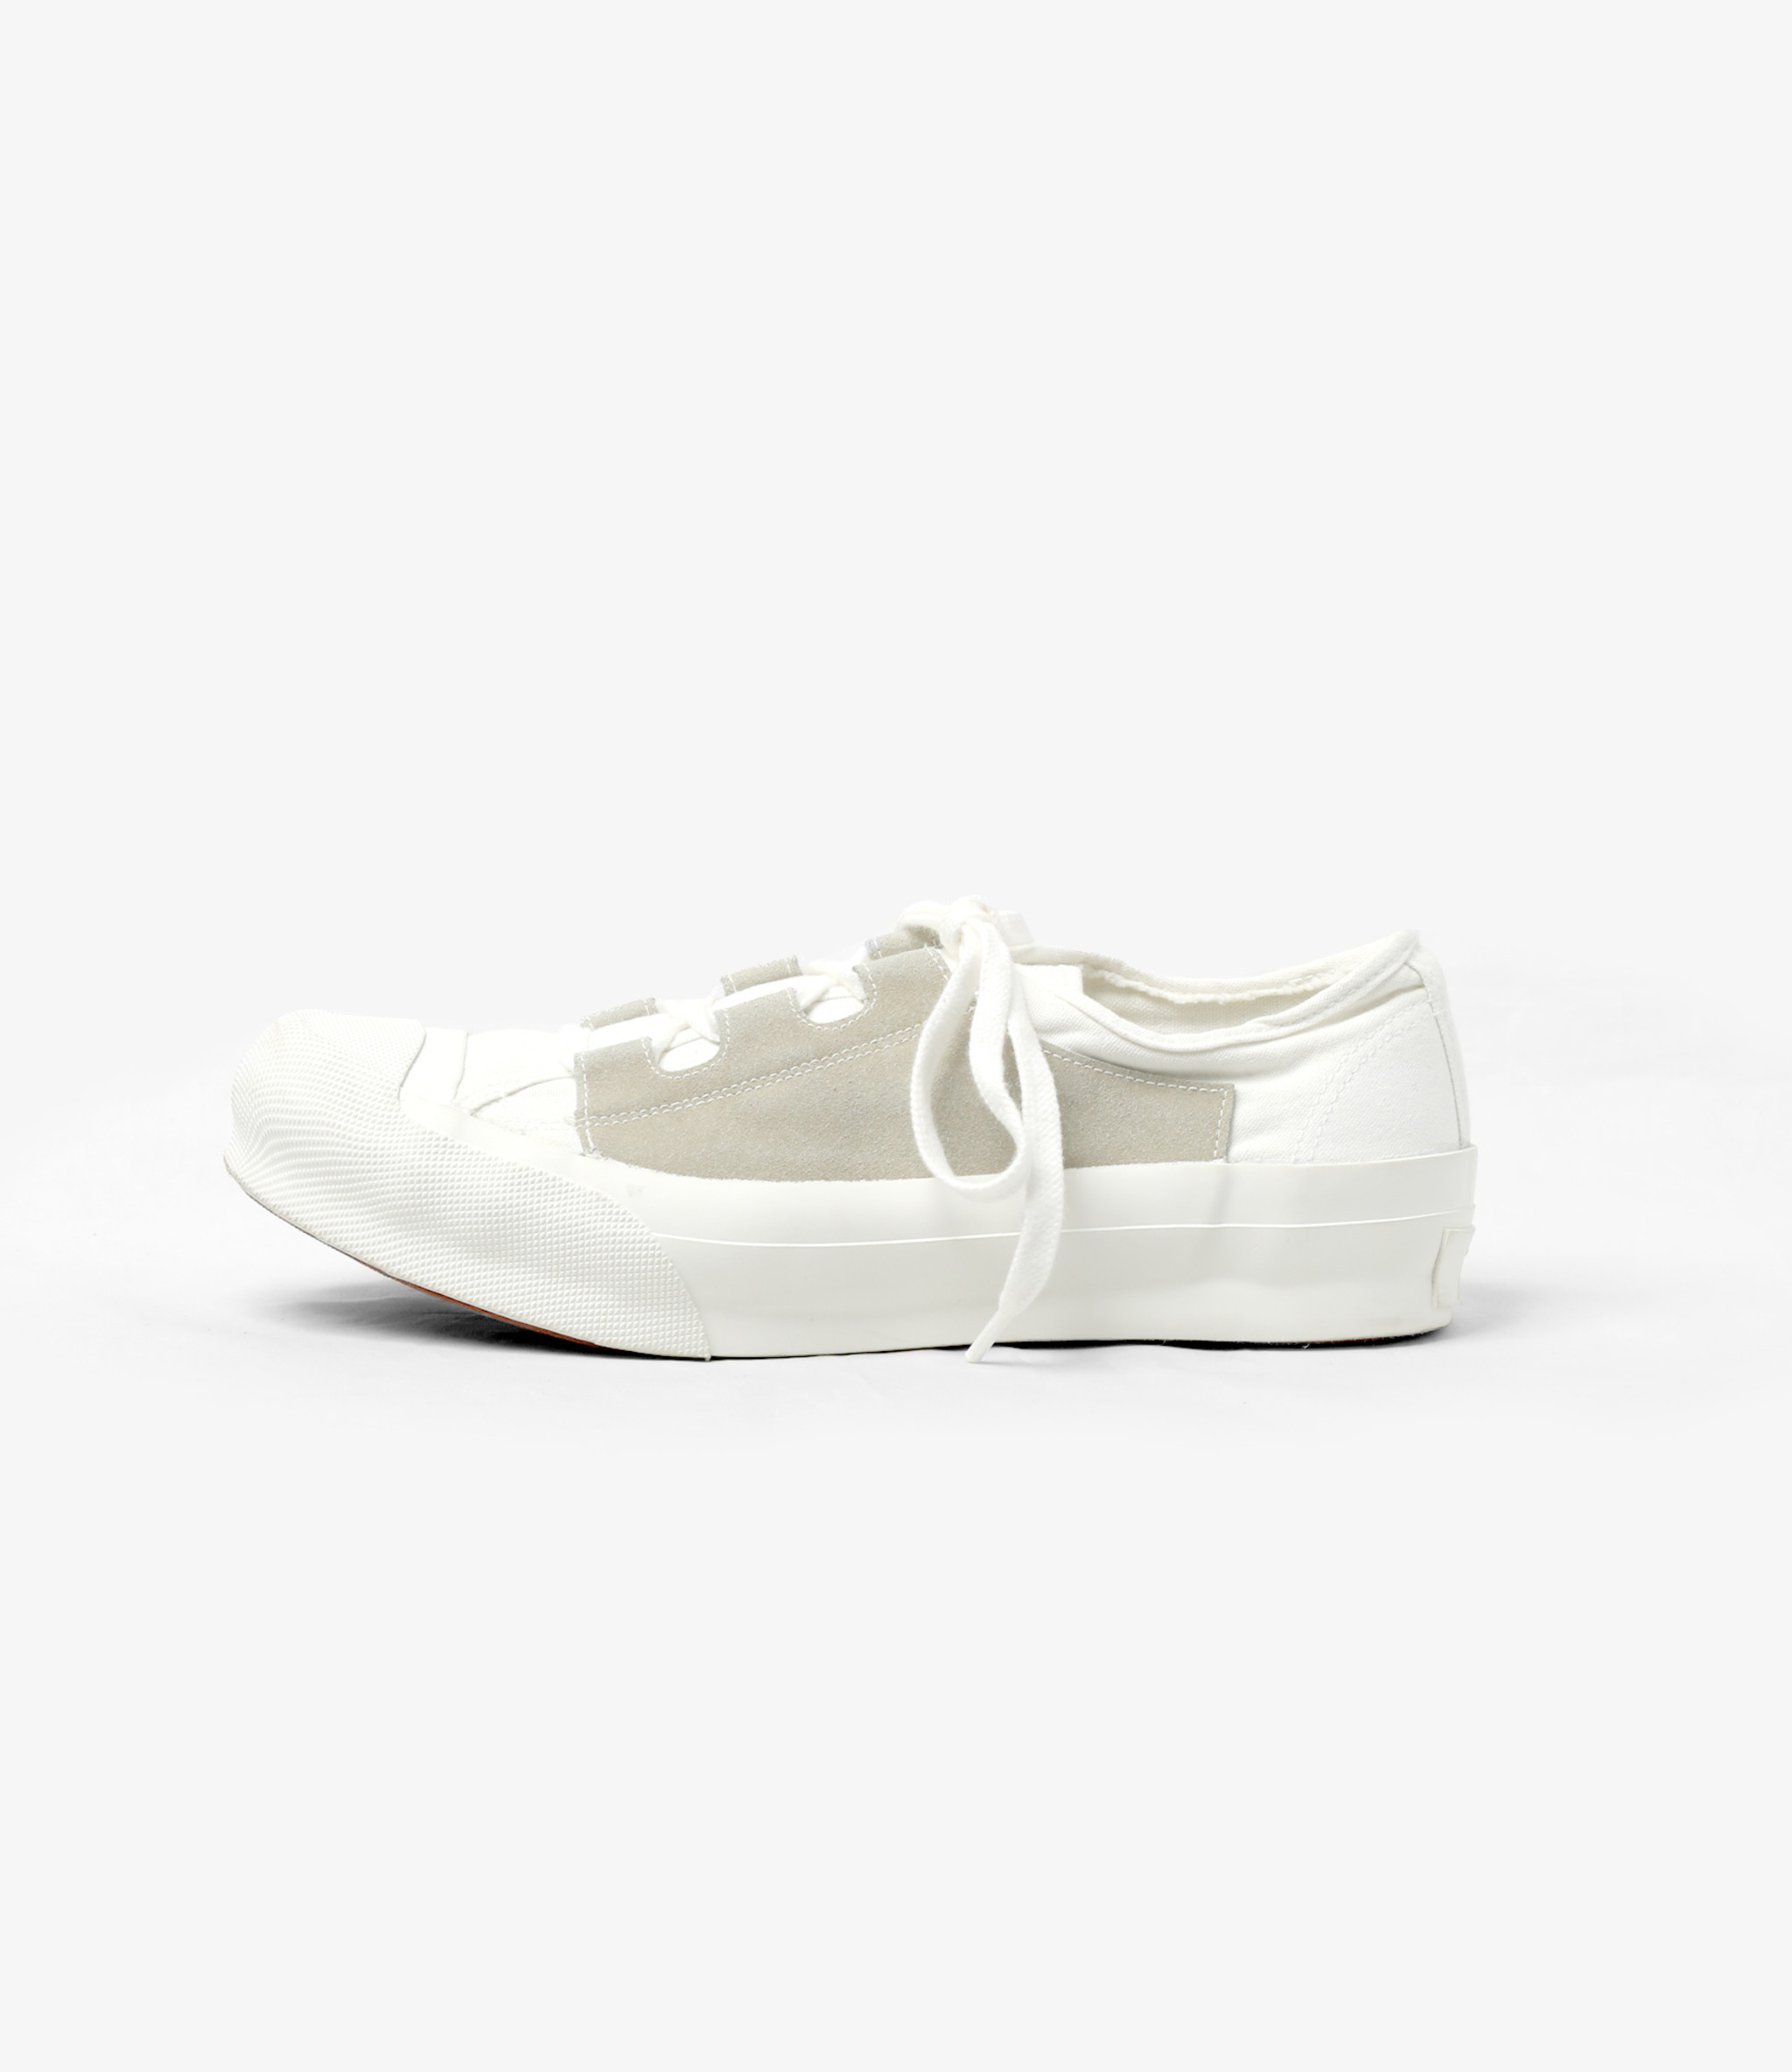 Needles Asymmetric Ghillie Sneaker - White